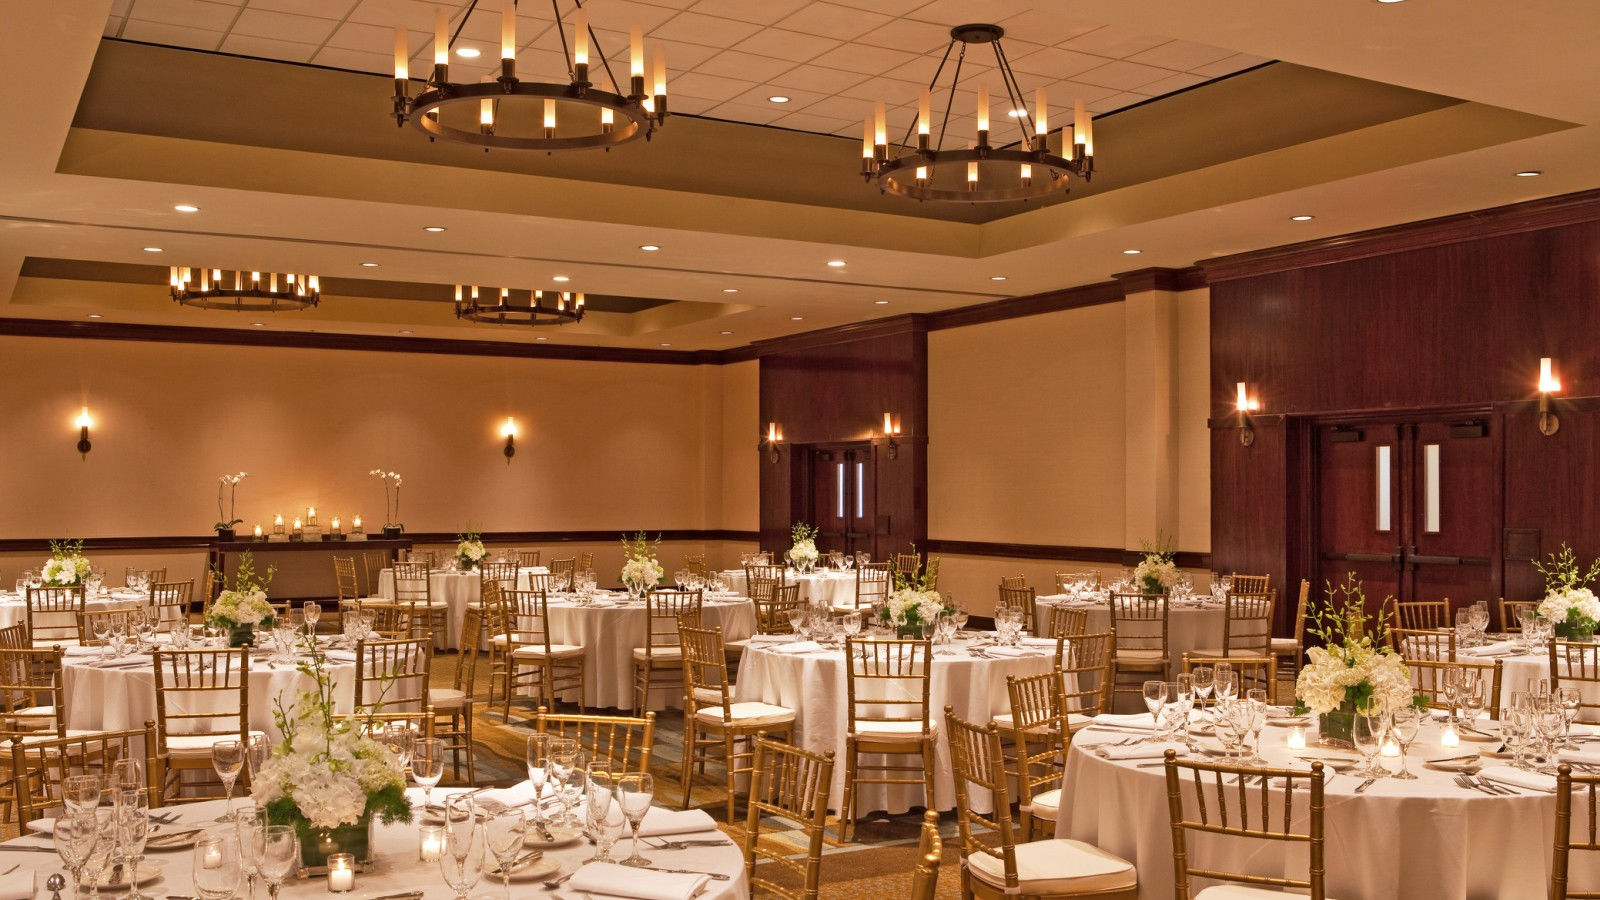 Indian Wedding Dallas - Venues